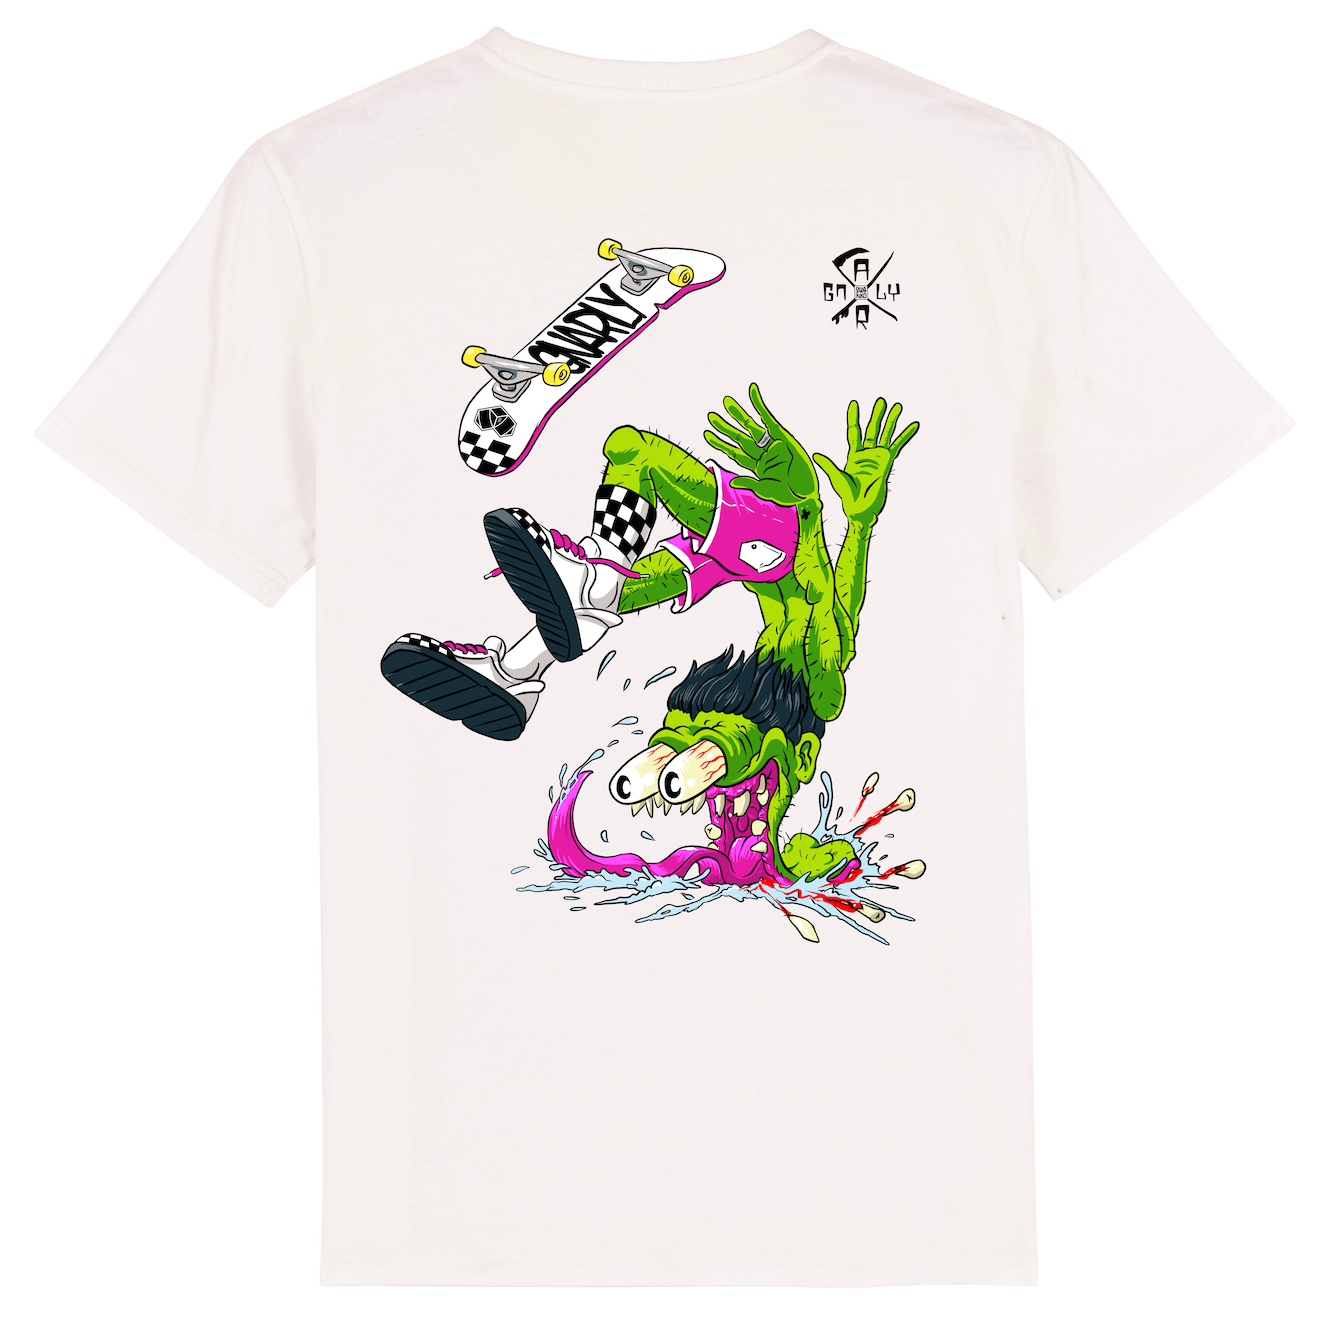 Skate t-shirt men white, BigFlip